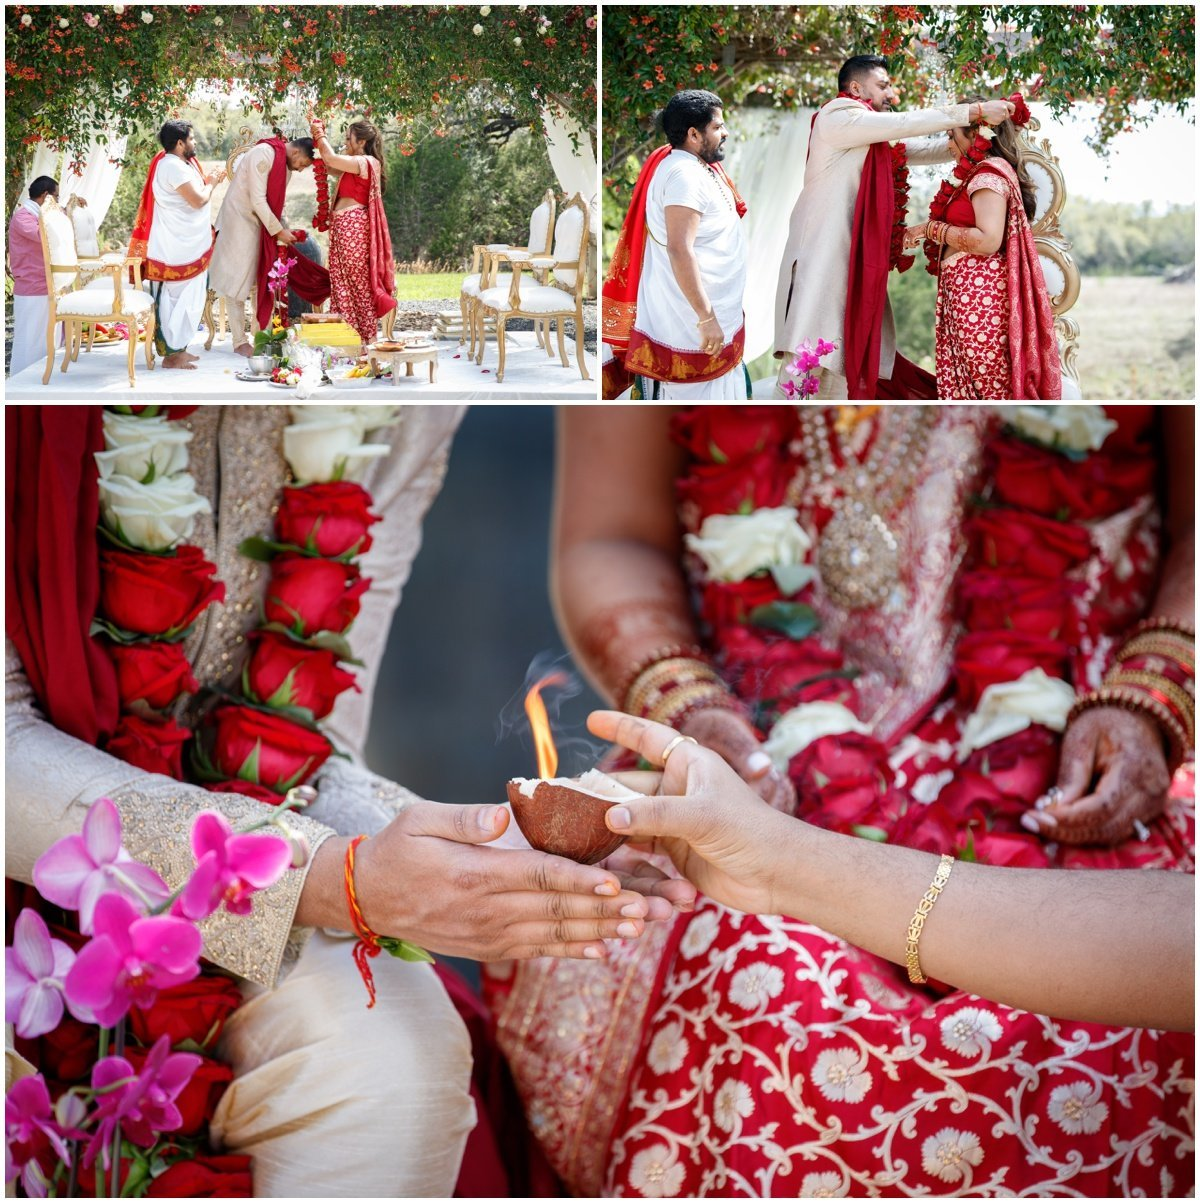 Austin wedding photographer pecan springs ranch wedding photographer Indian ceremony coconut